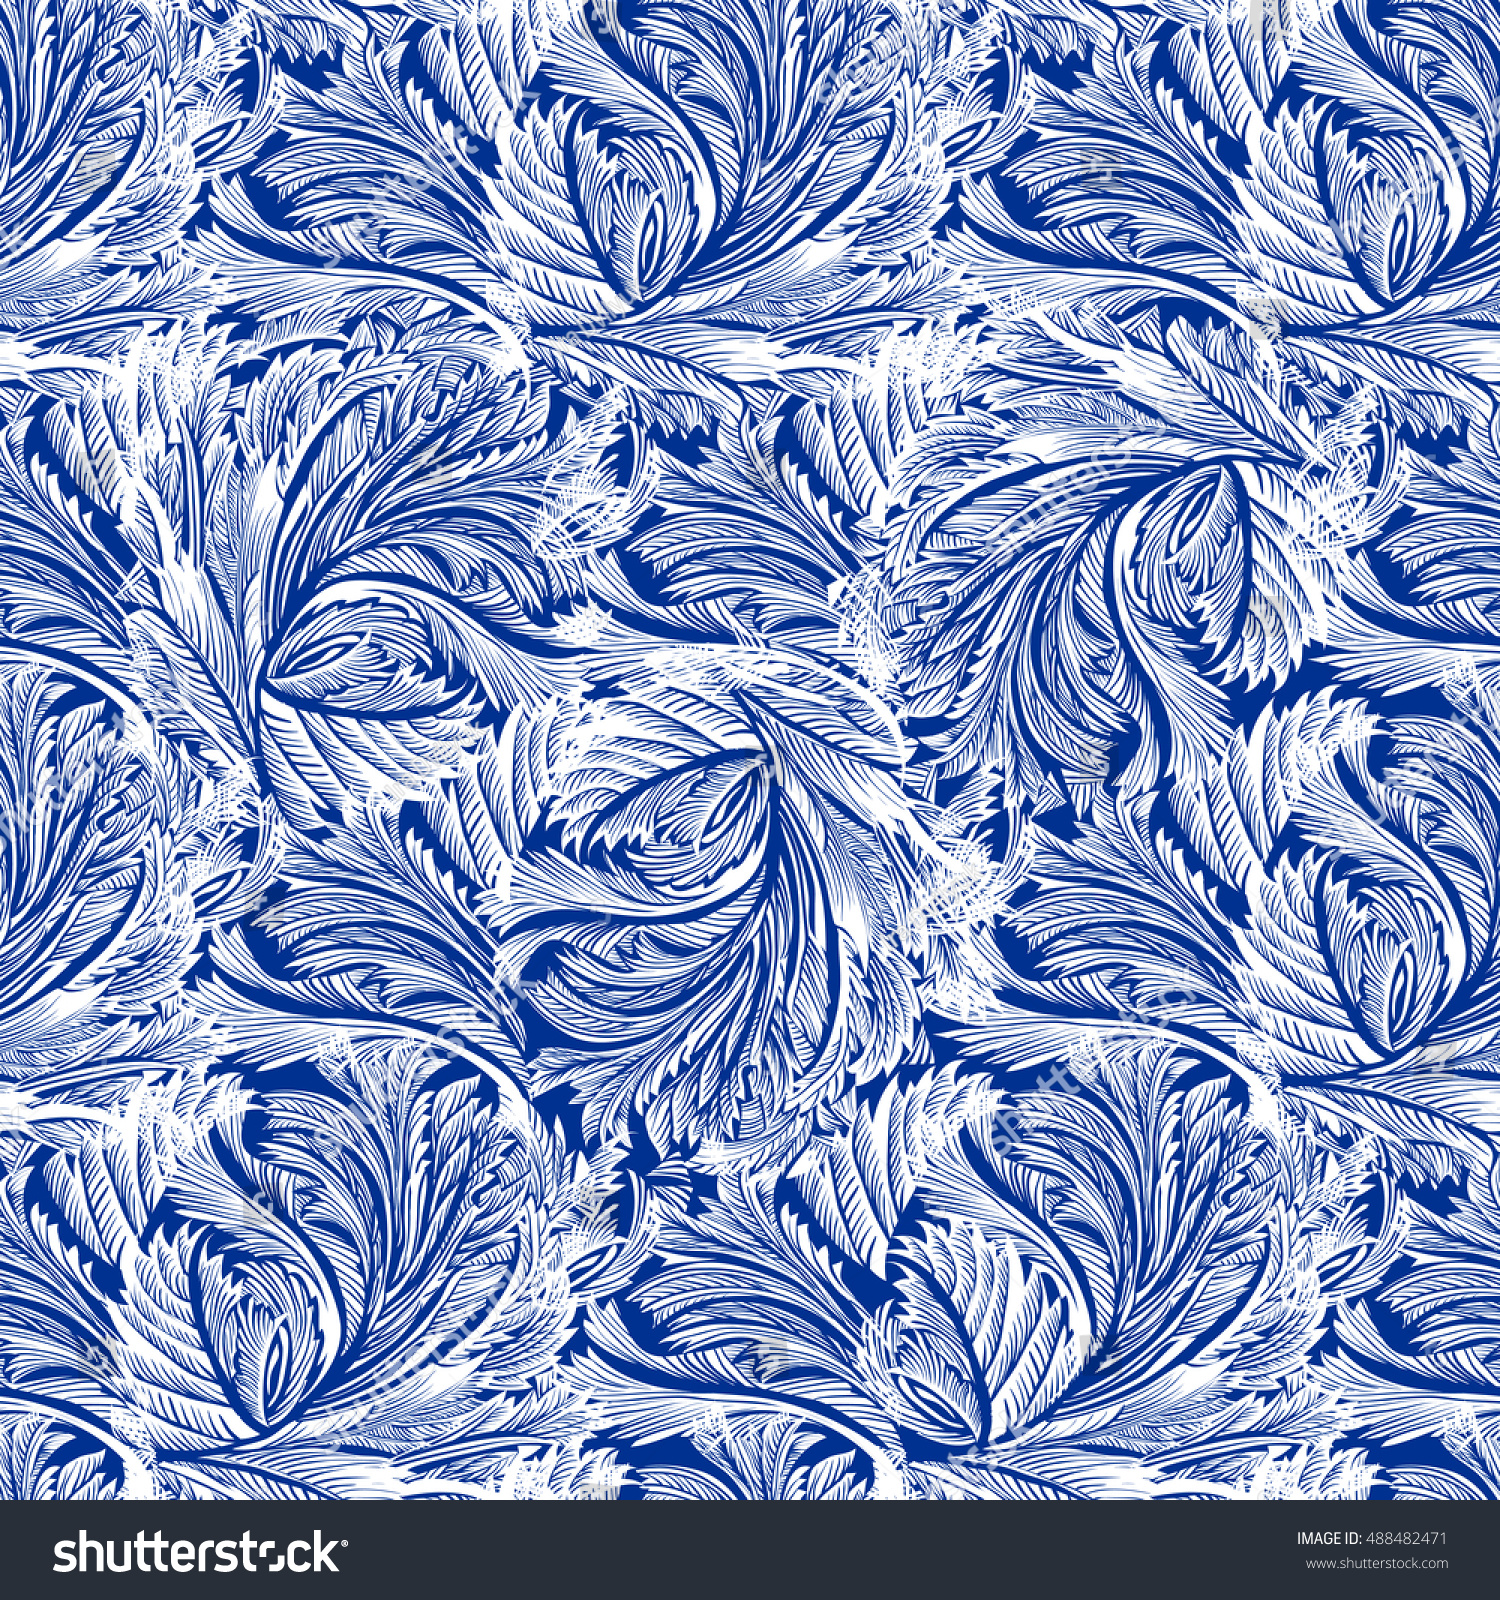 Winter Holiday Blue Frost Seamless Pattern 488482471